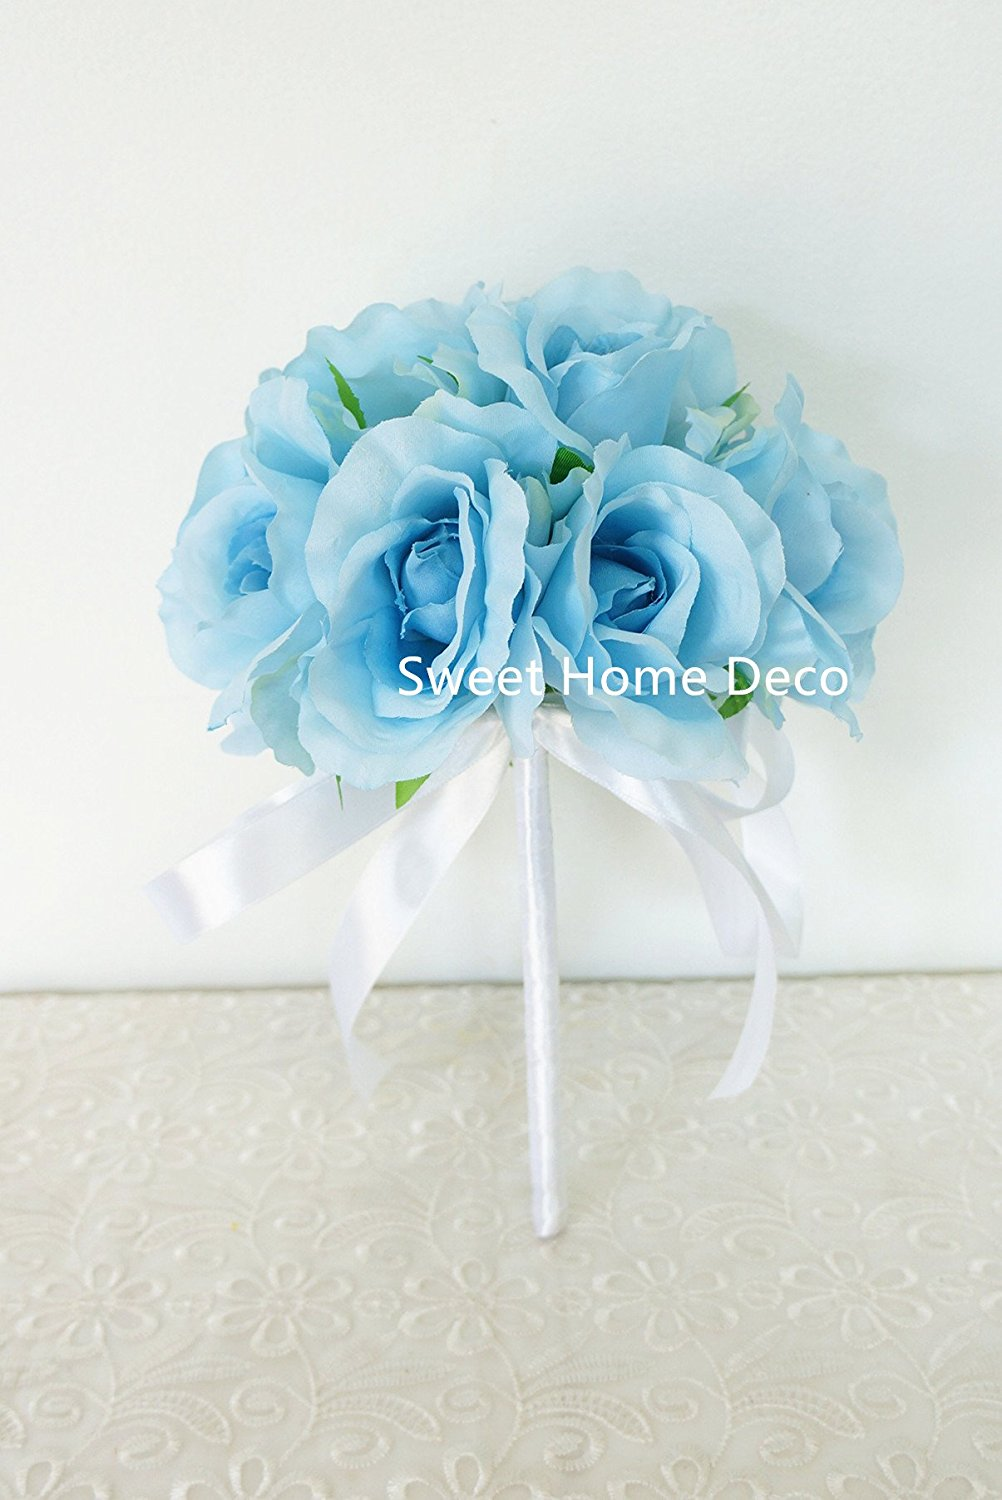 Buy Sweet Home Deco 11'' Silk Silk Rose Hydrangea ...